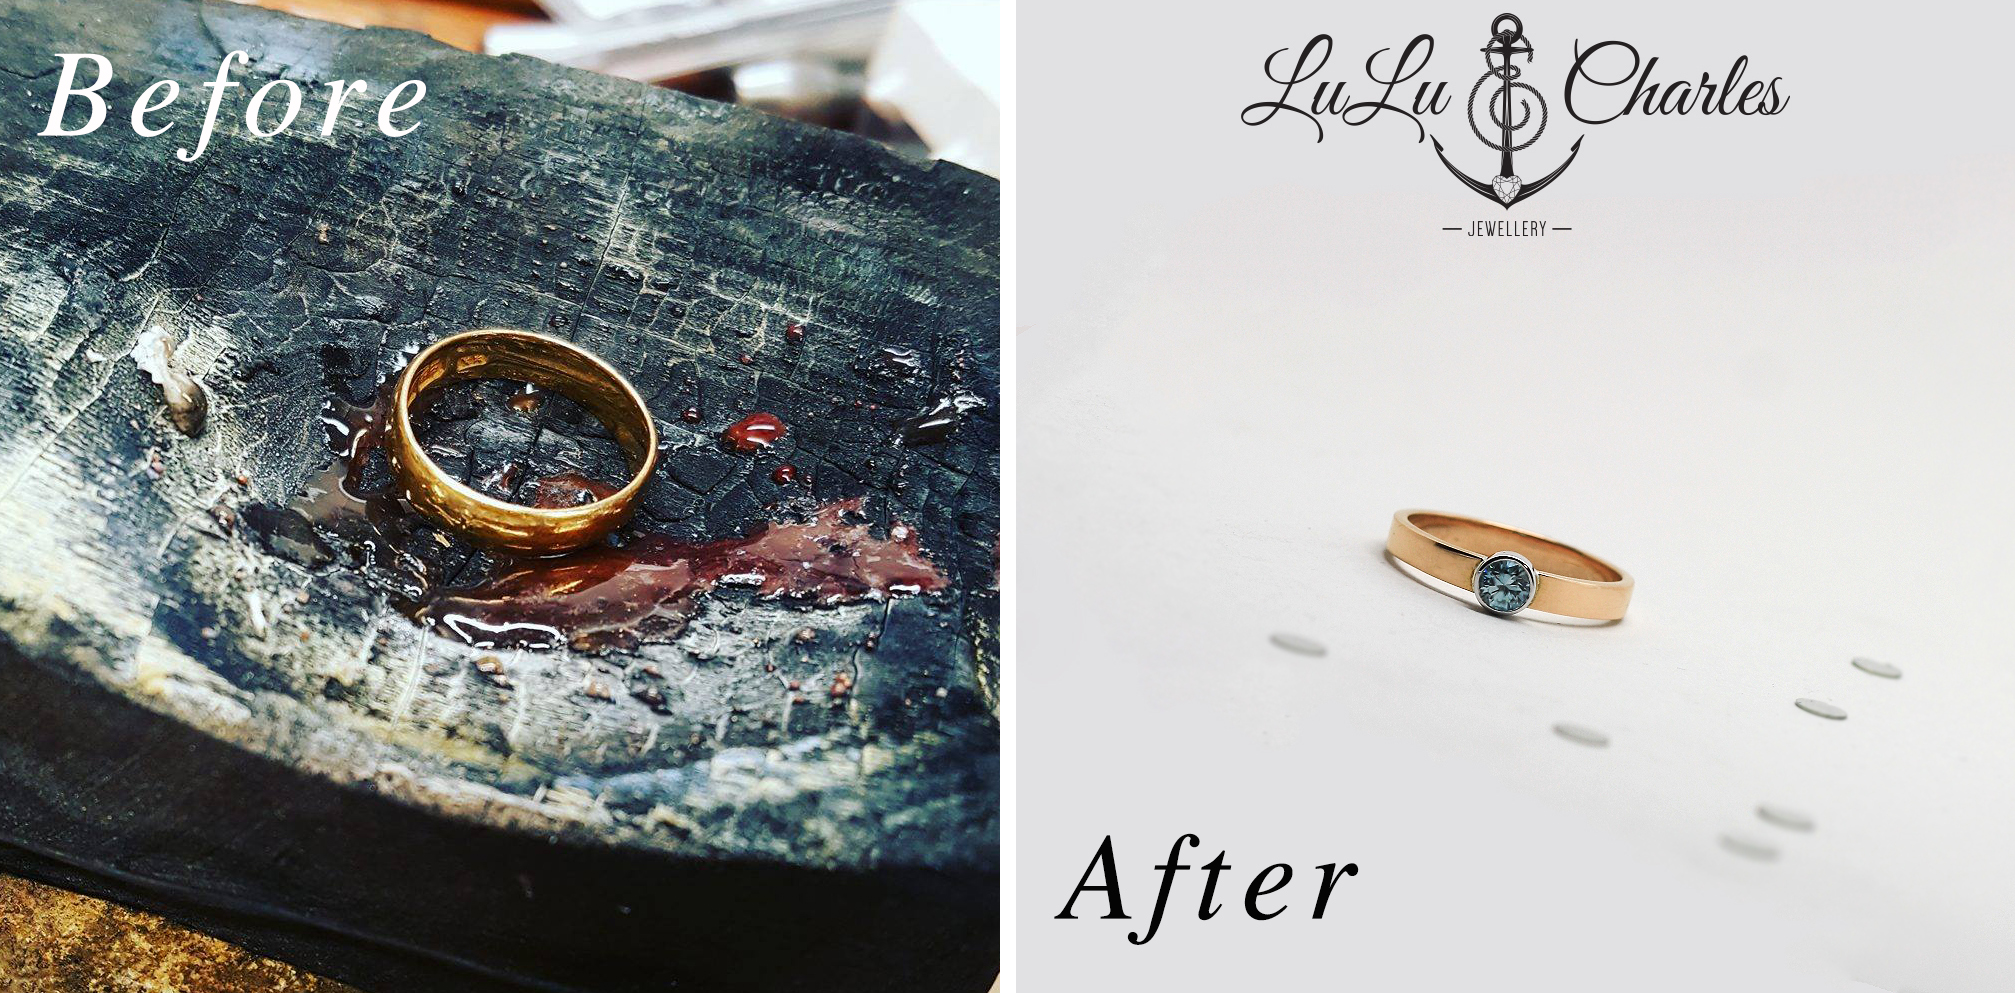 Remodelled sentimental gold jewellery before and after by LuLu & Charles Jewellery, Northeast uk